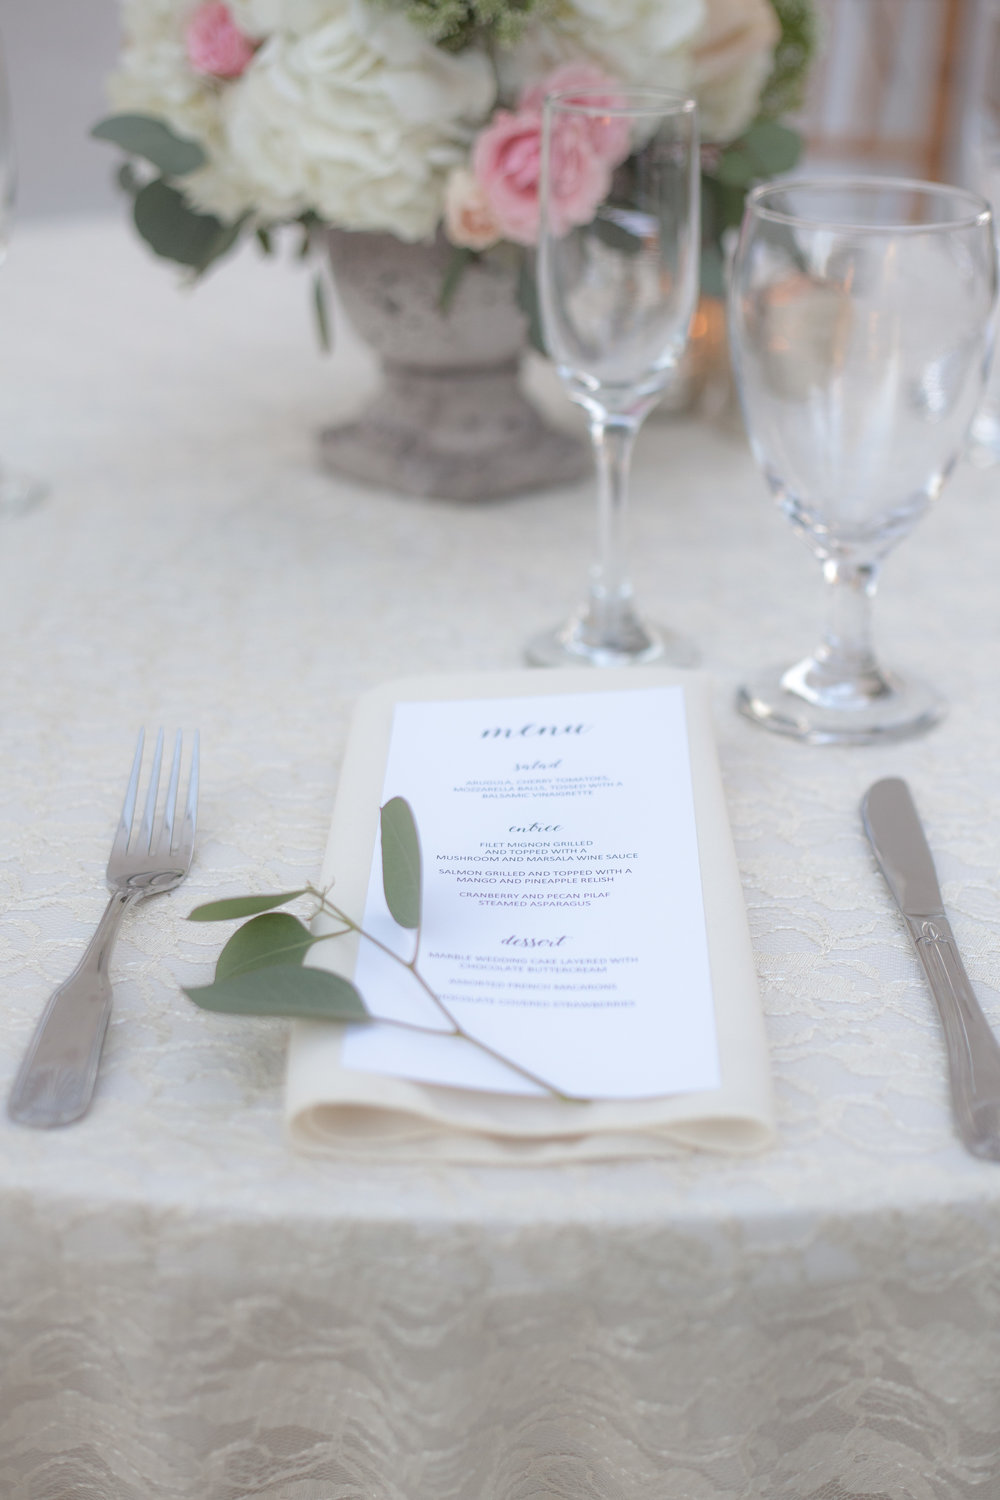 This beautiful place setting is lovely for a wedding reception.